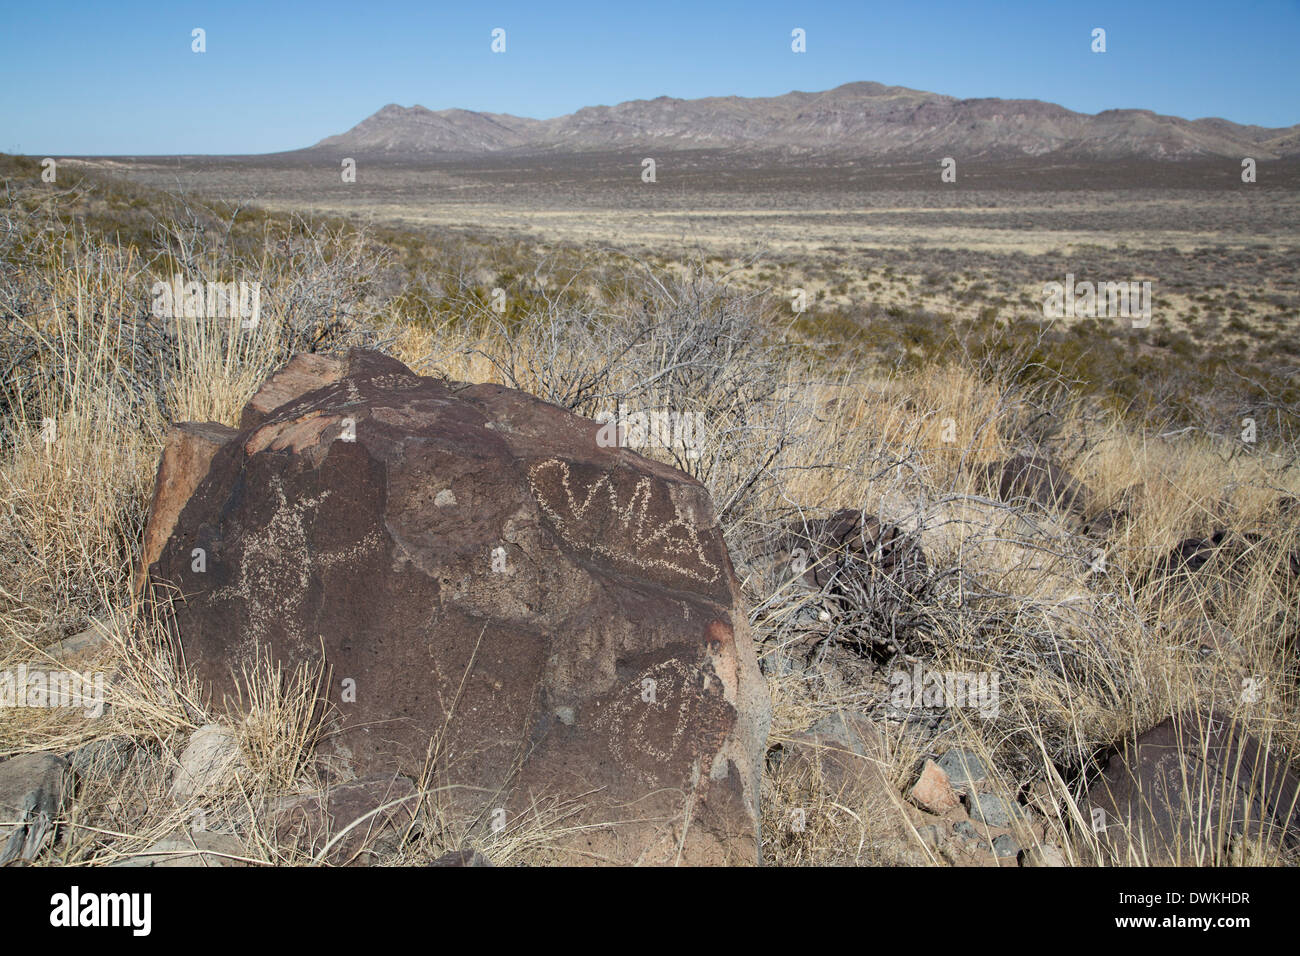 Bureau of Land Management, Three Rivers Petroglyph Site, carvings created by the Jornada Mogollon people, New Mexico - Stock Image